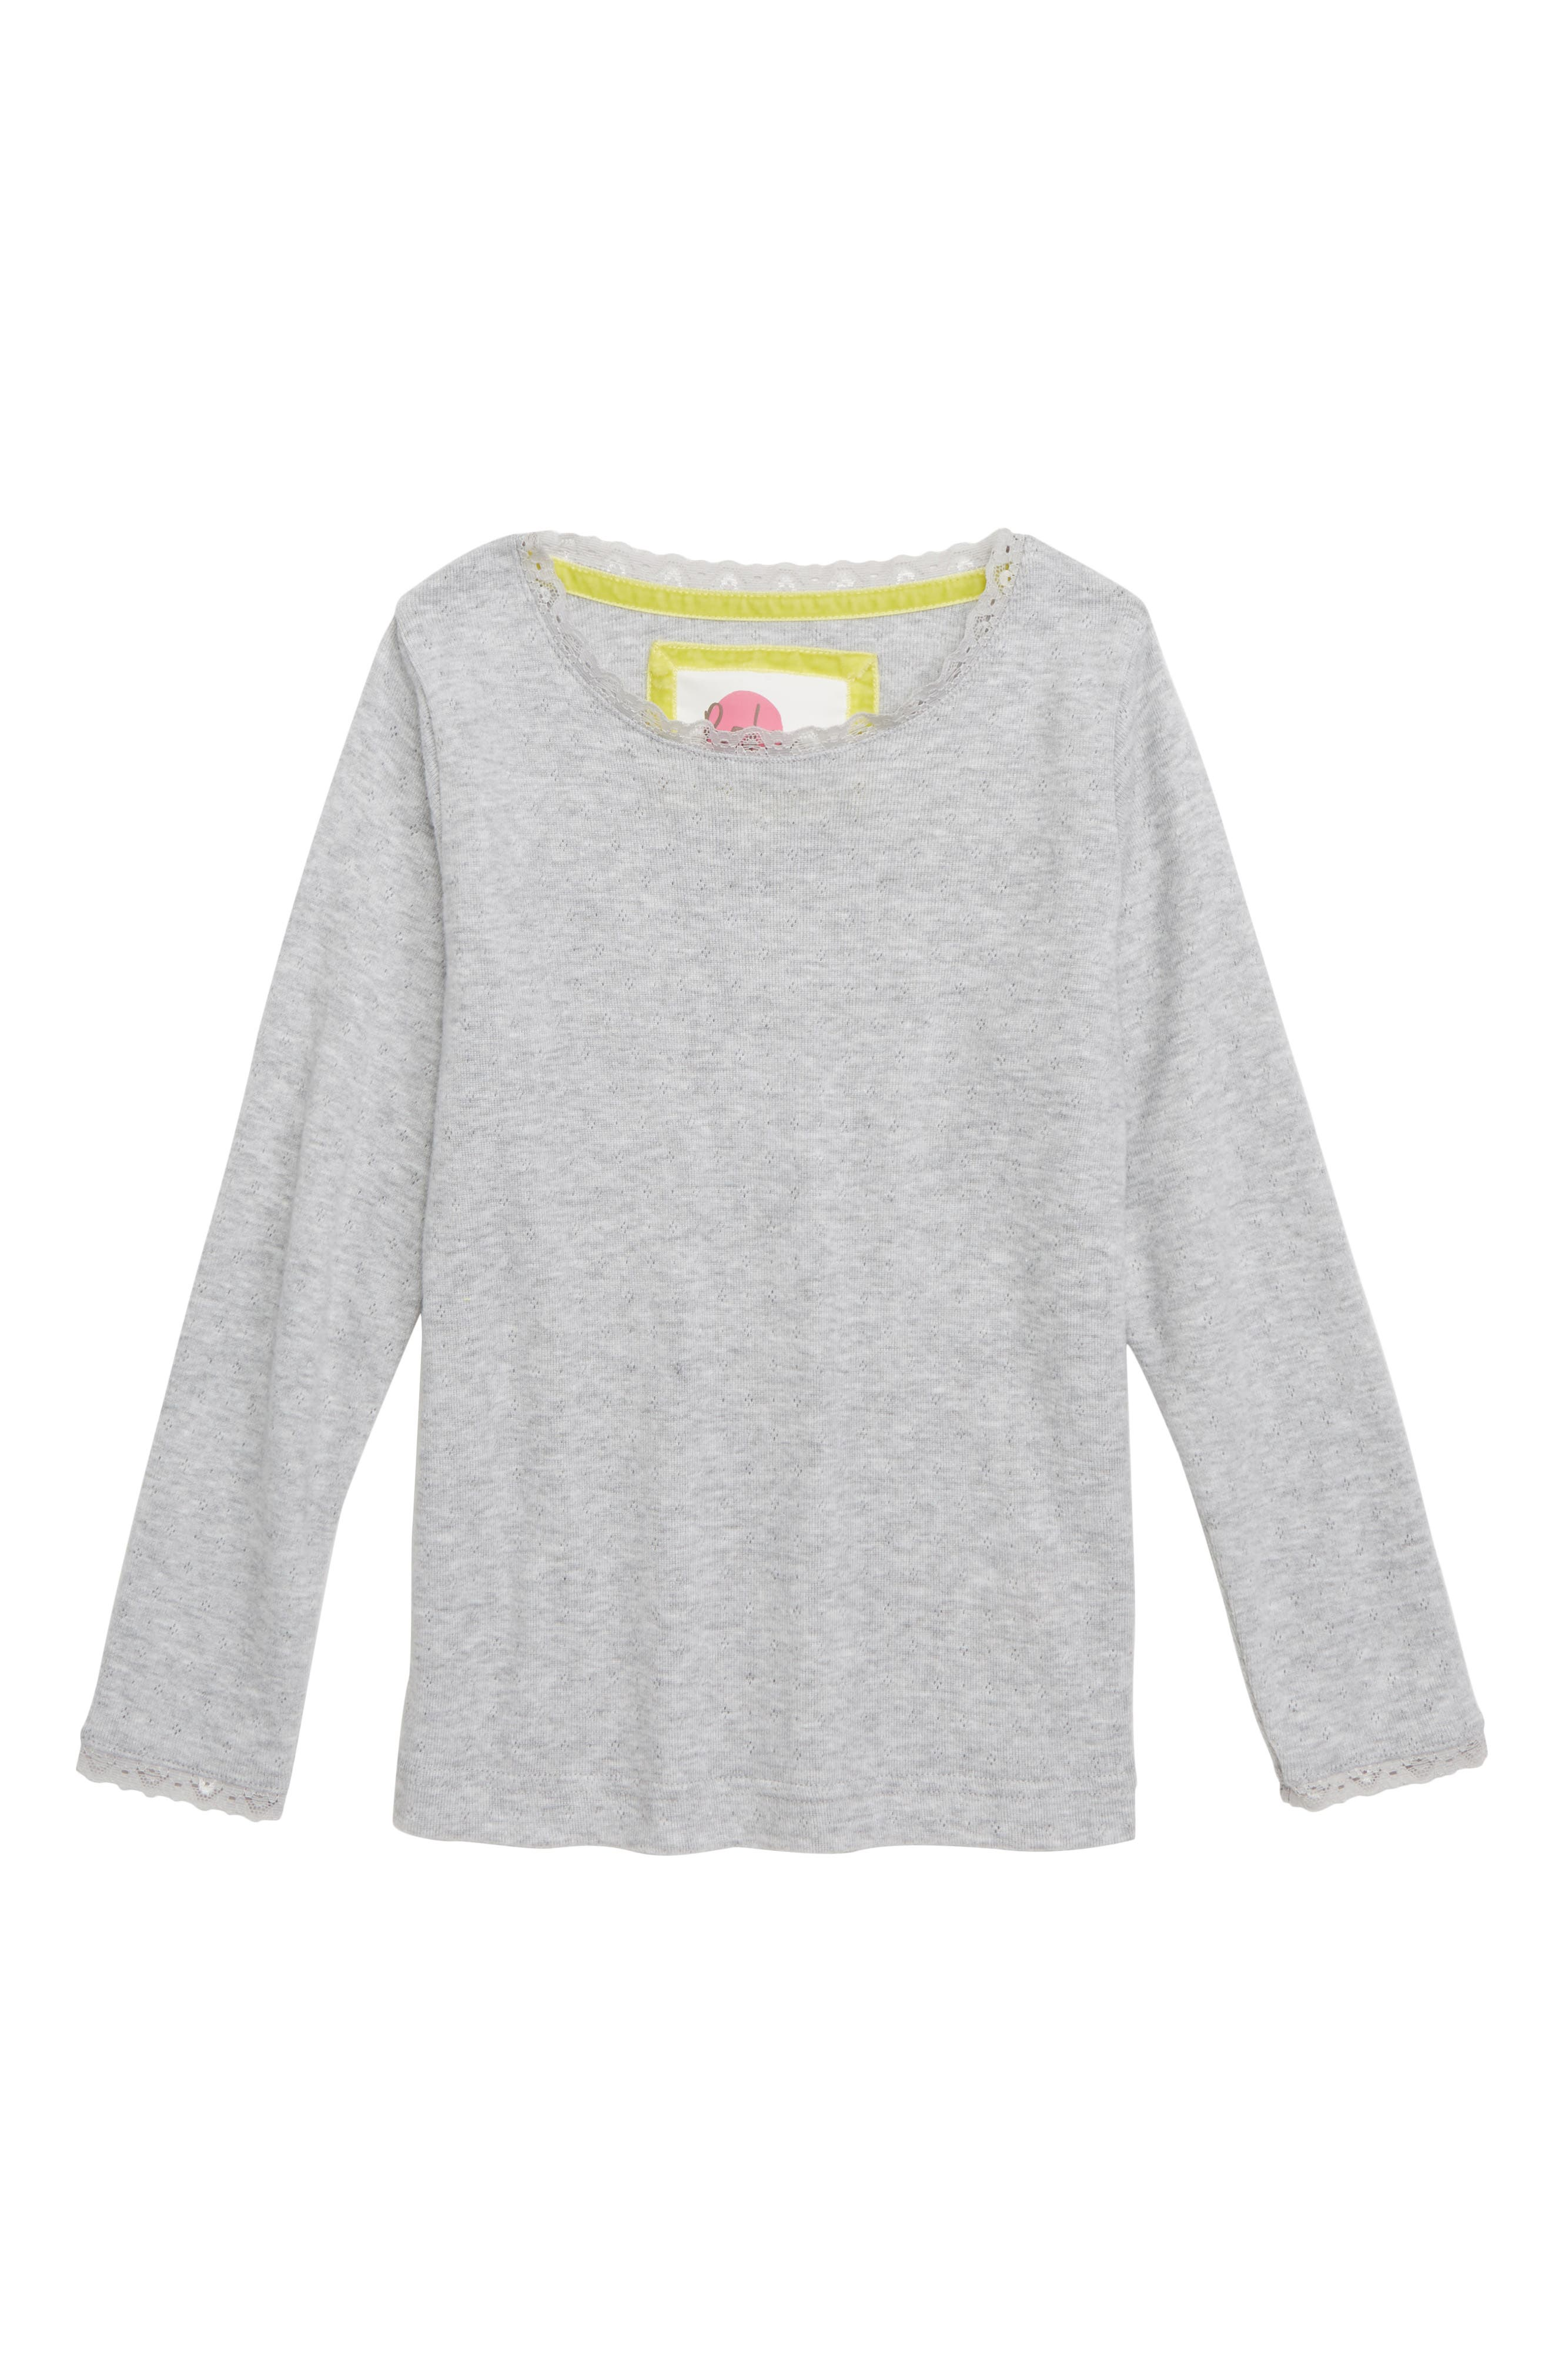 Pointelle Tee,                         Main,                         color, GREY MARL